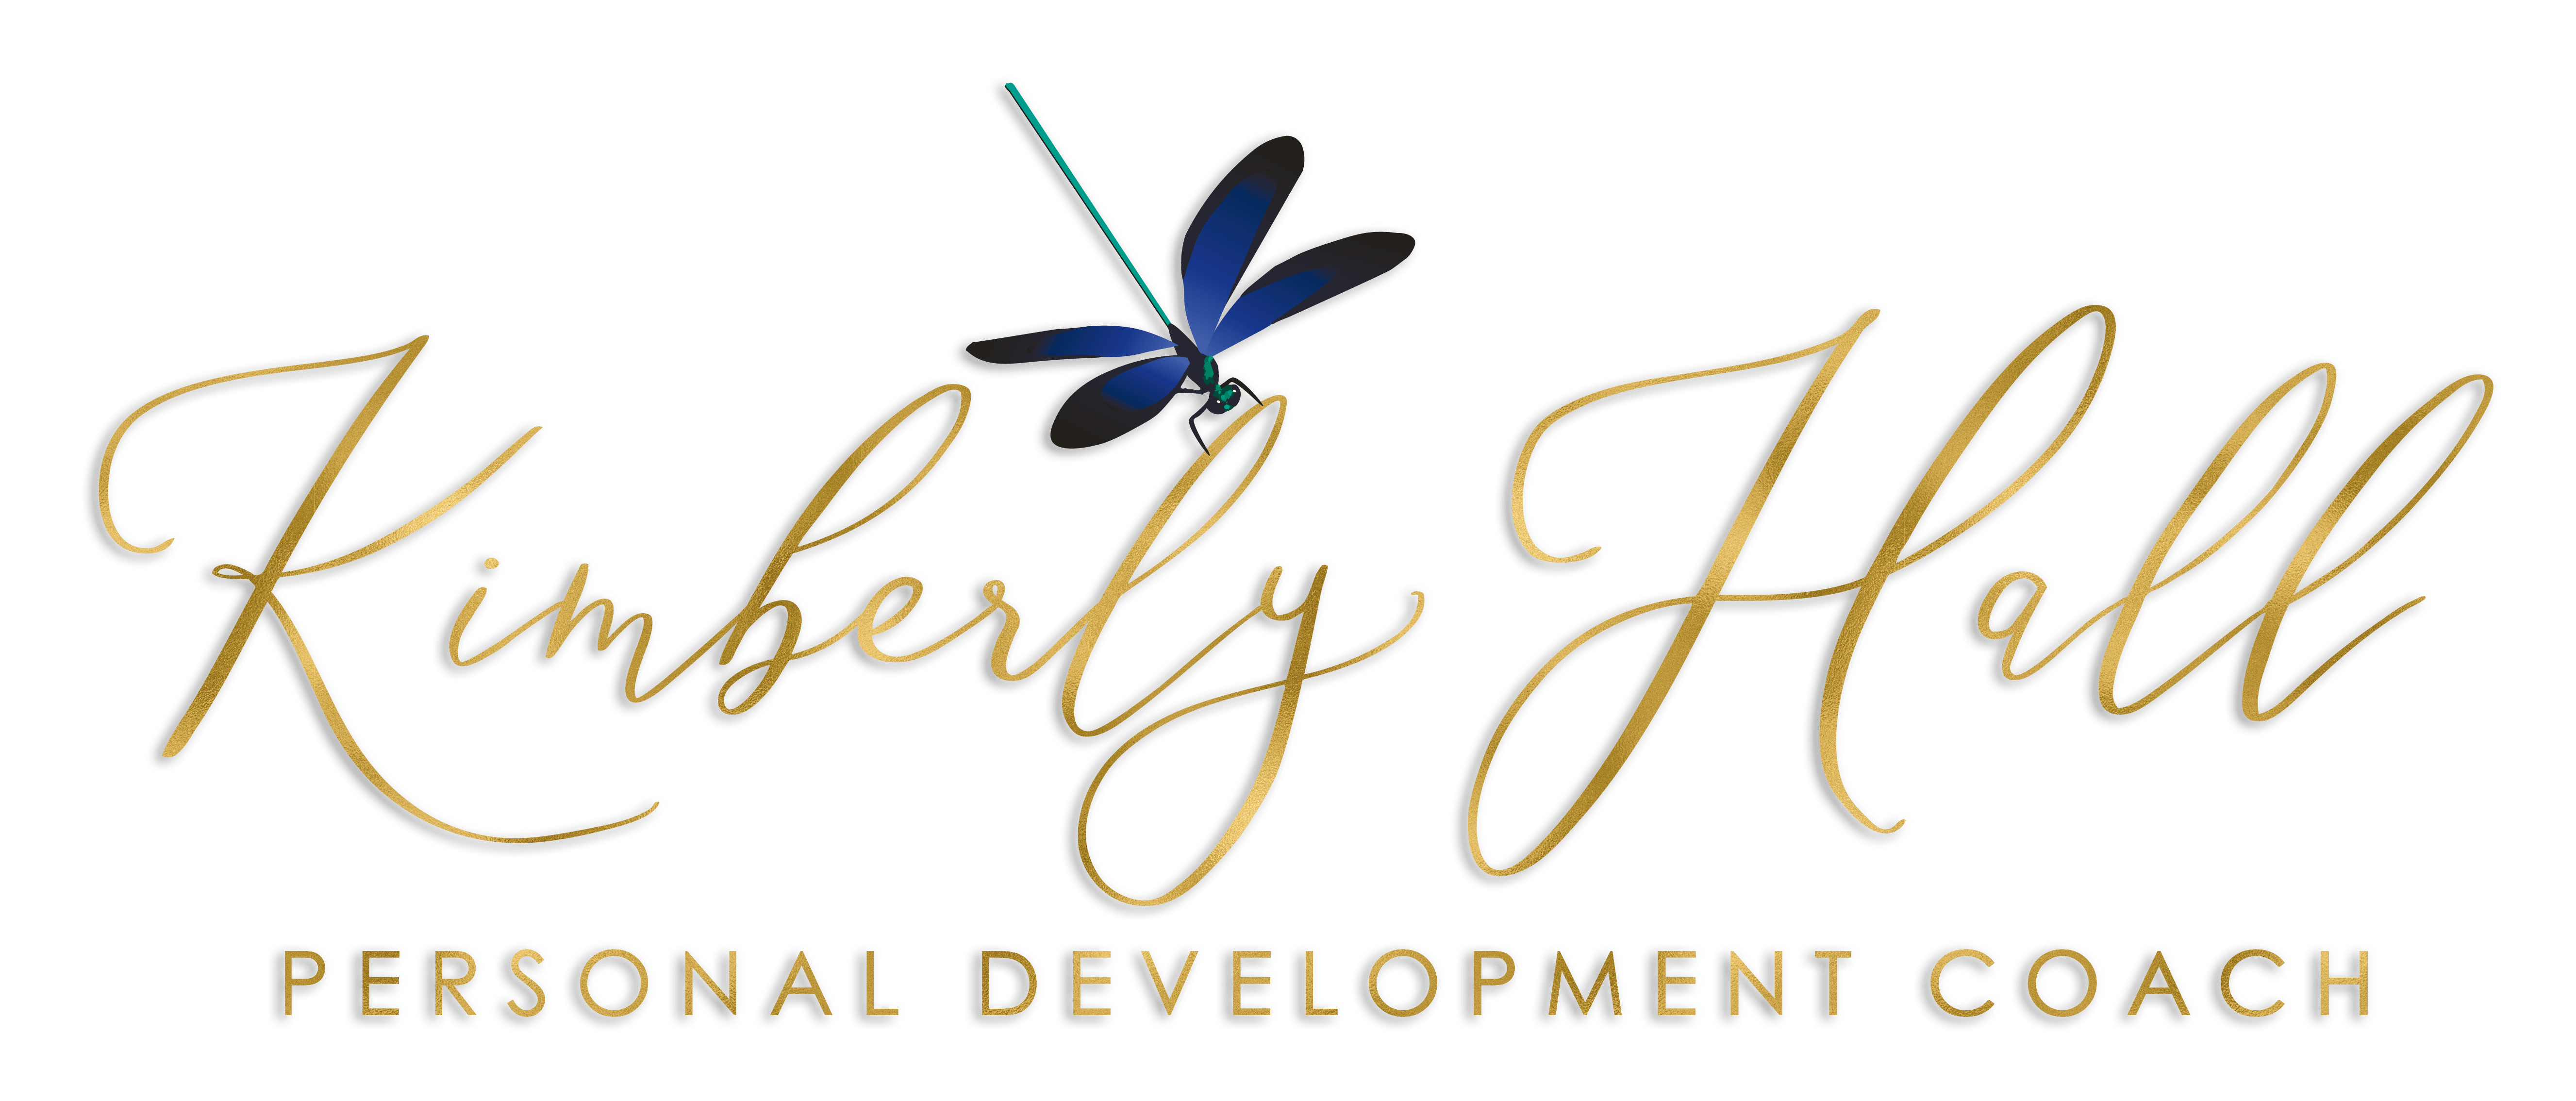 Kimberly Hall Personal Development Coach